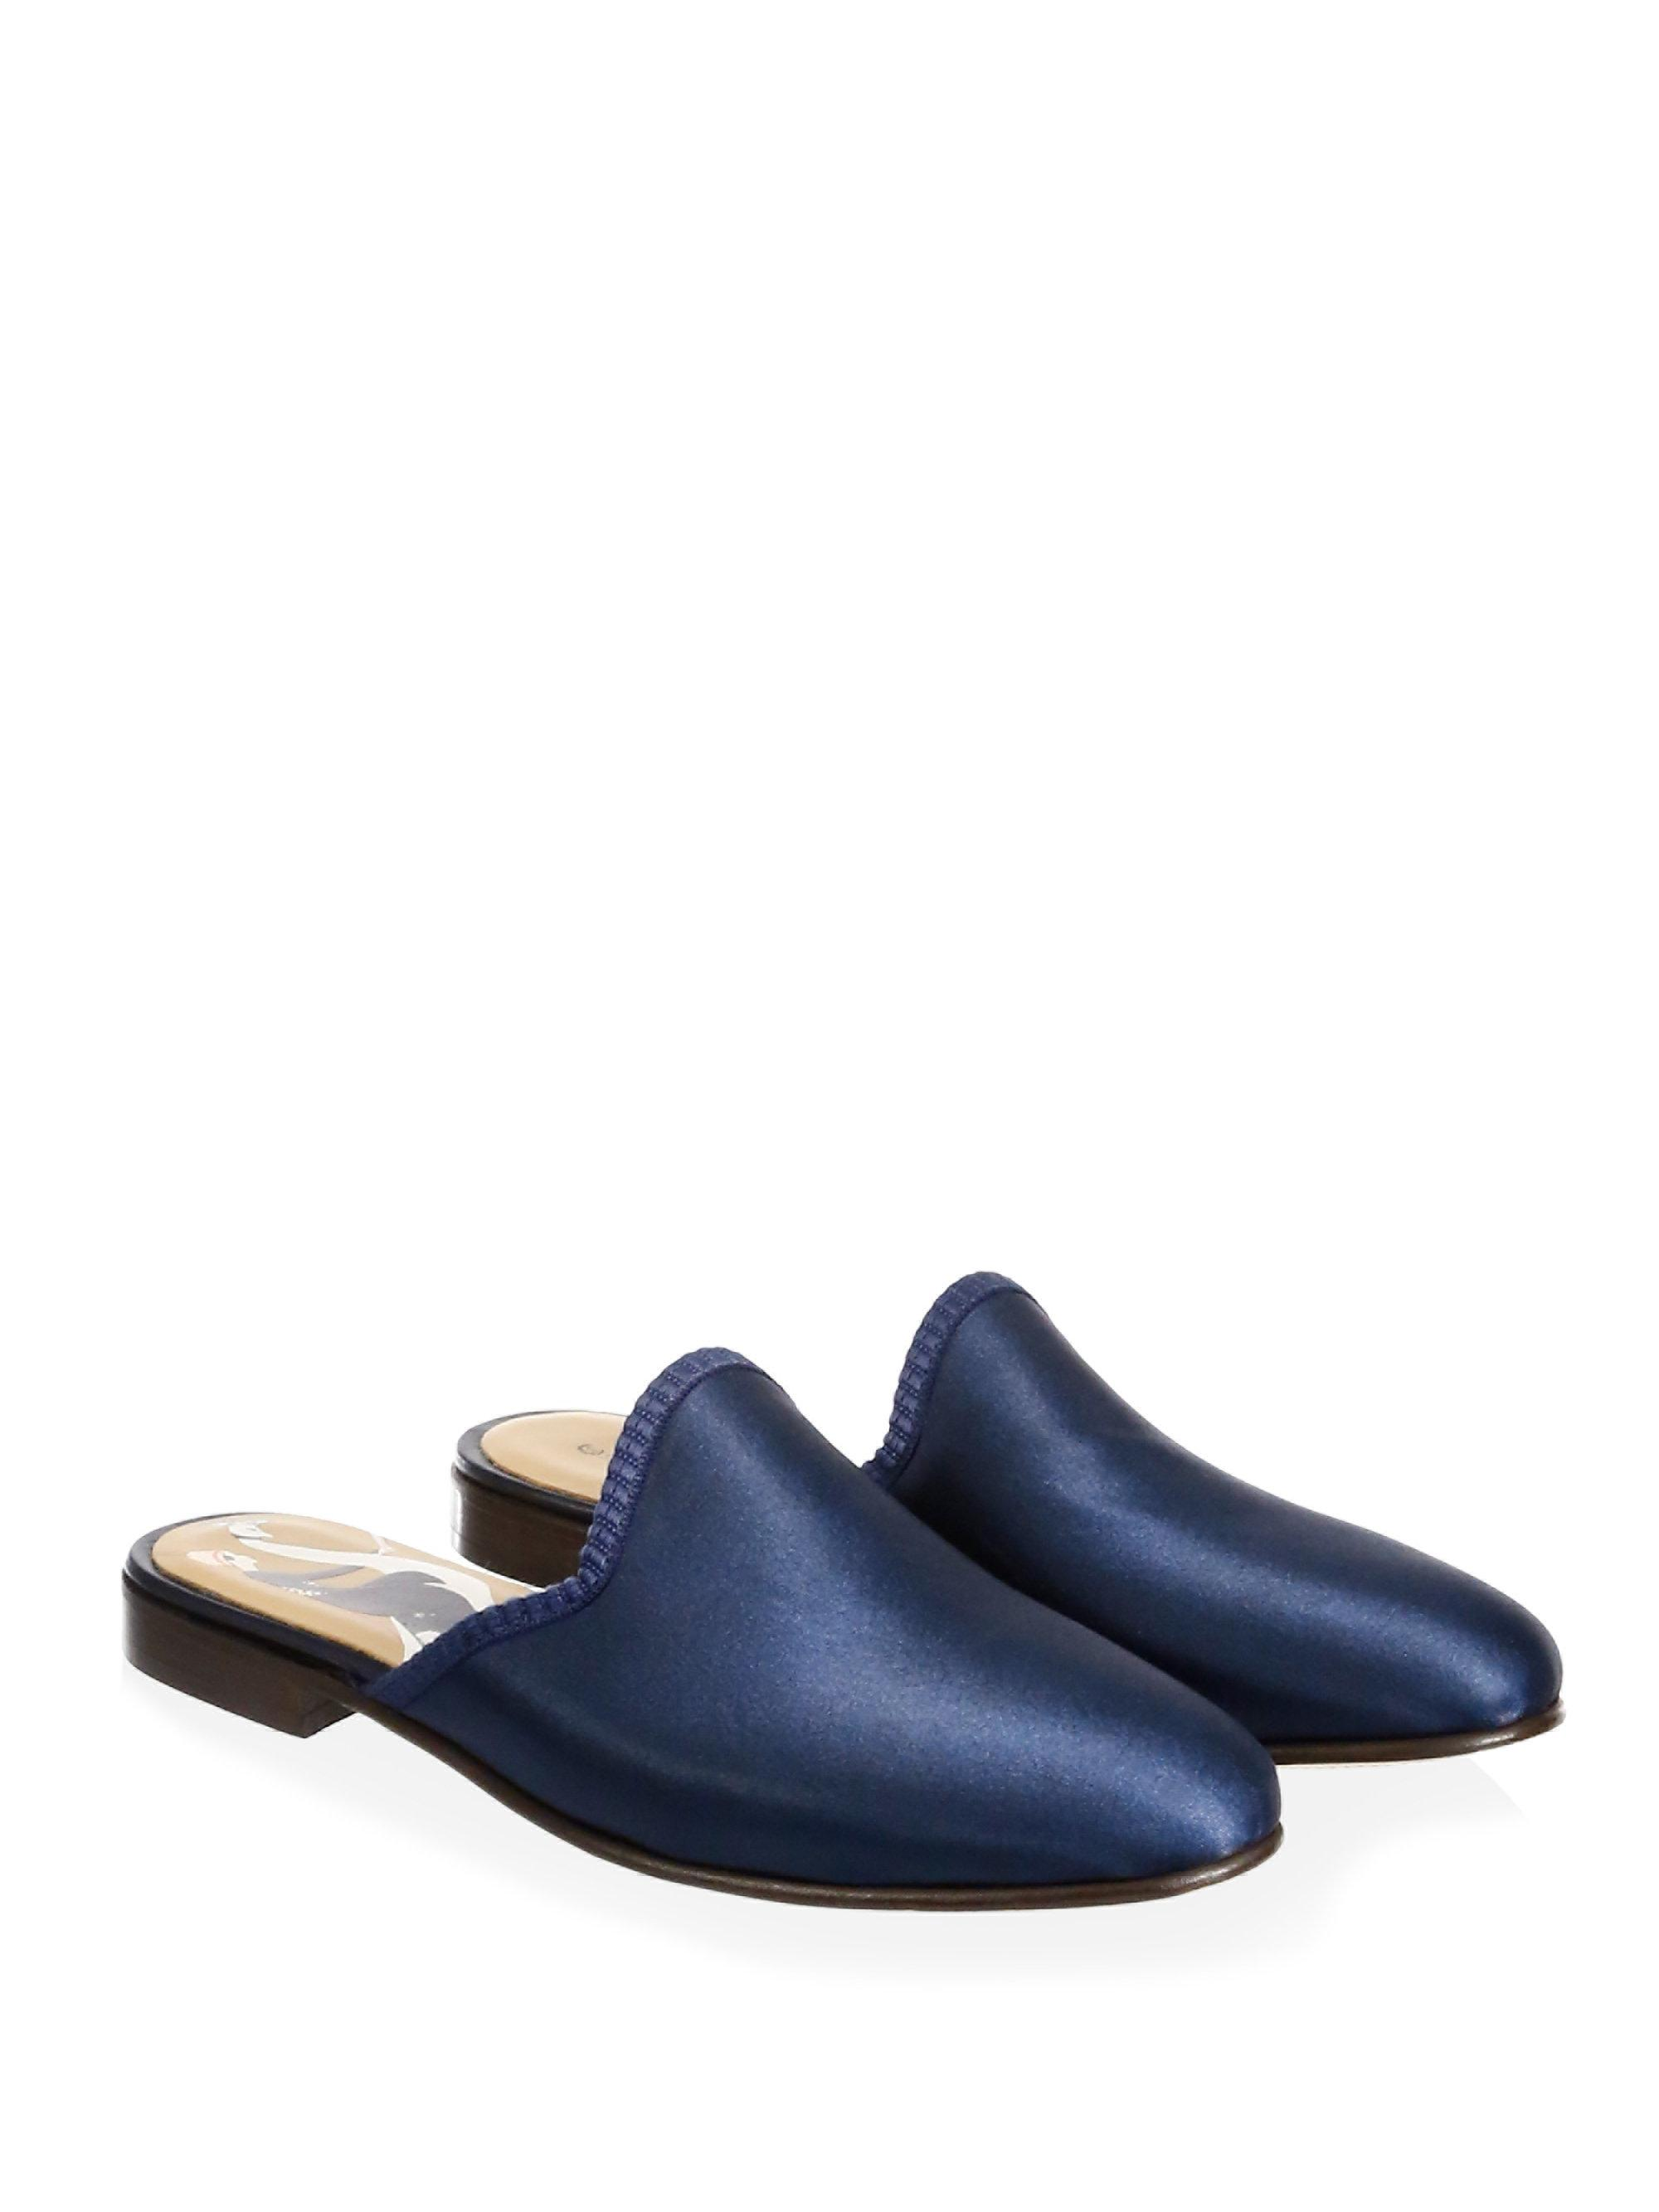 DEL TORO Vogue Satin Mules